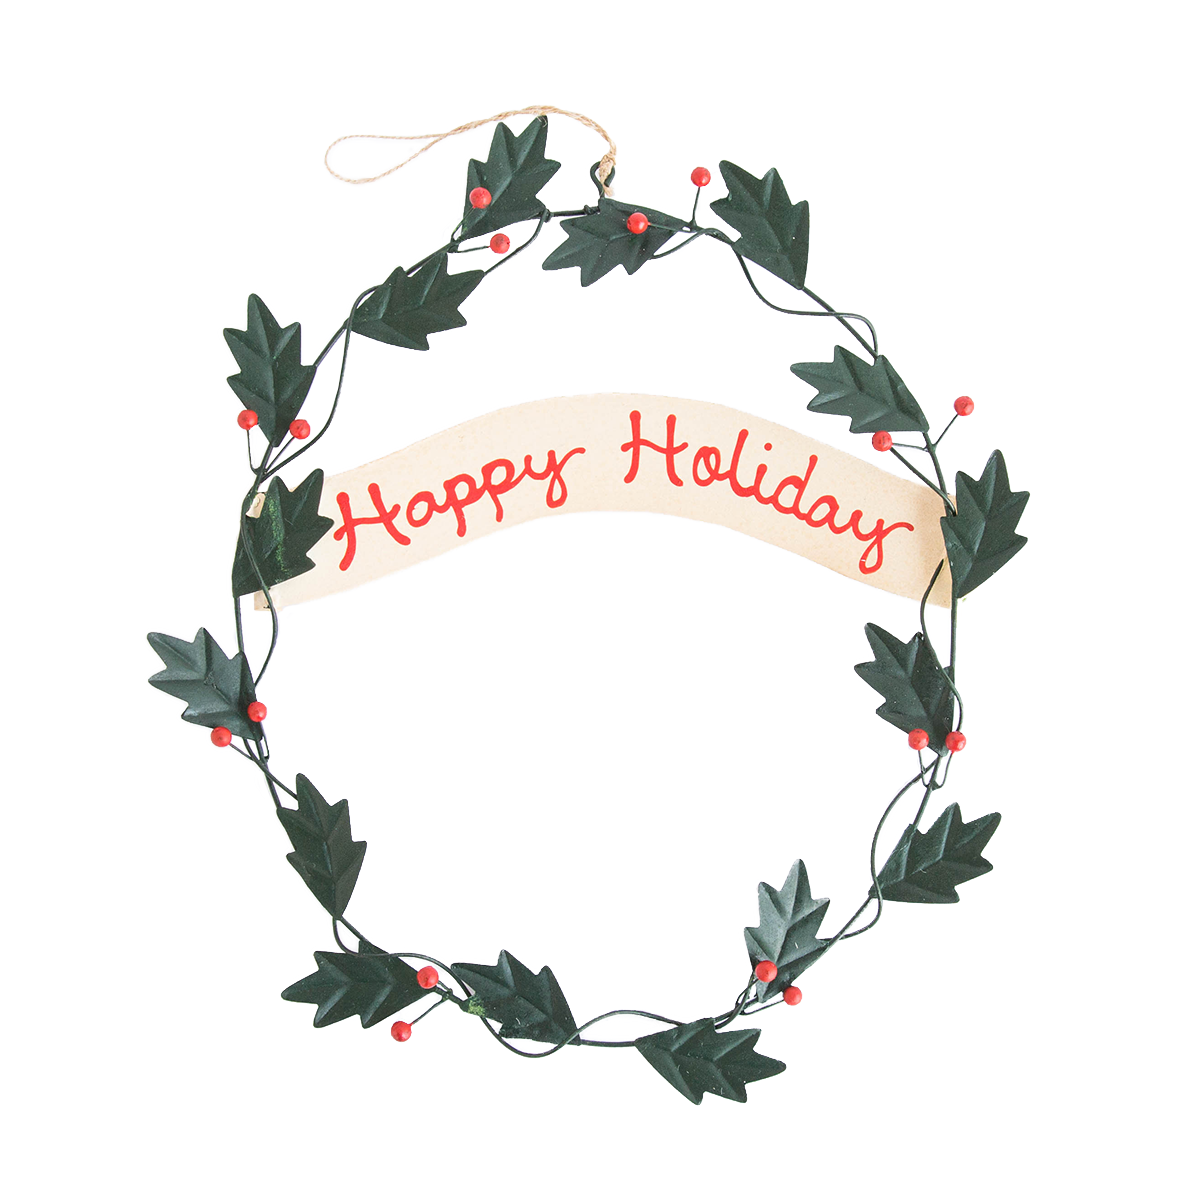 Hand-Painted_Wreath_Ornaments_Happy_Holidays_1.png